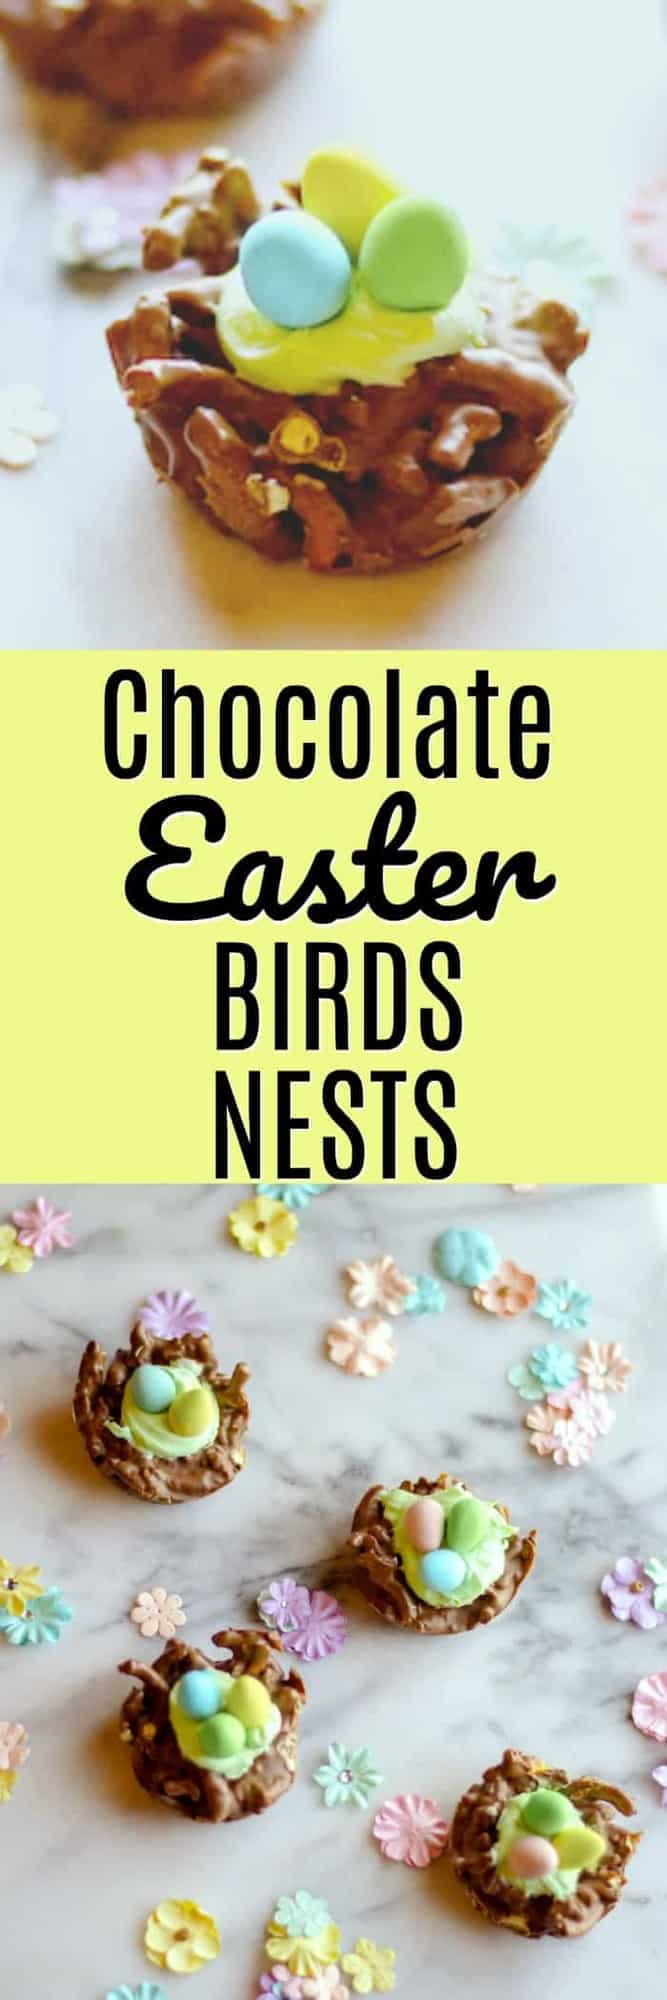 These Chocolate Easter Birds Nests are super quick to cook up and the pretzels and chocolate make a delicious sweet and salty Easter treat! They are no-bake AND only use 5 ingredients!